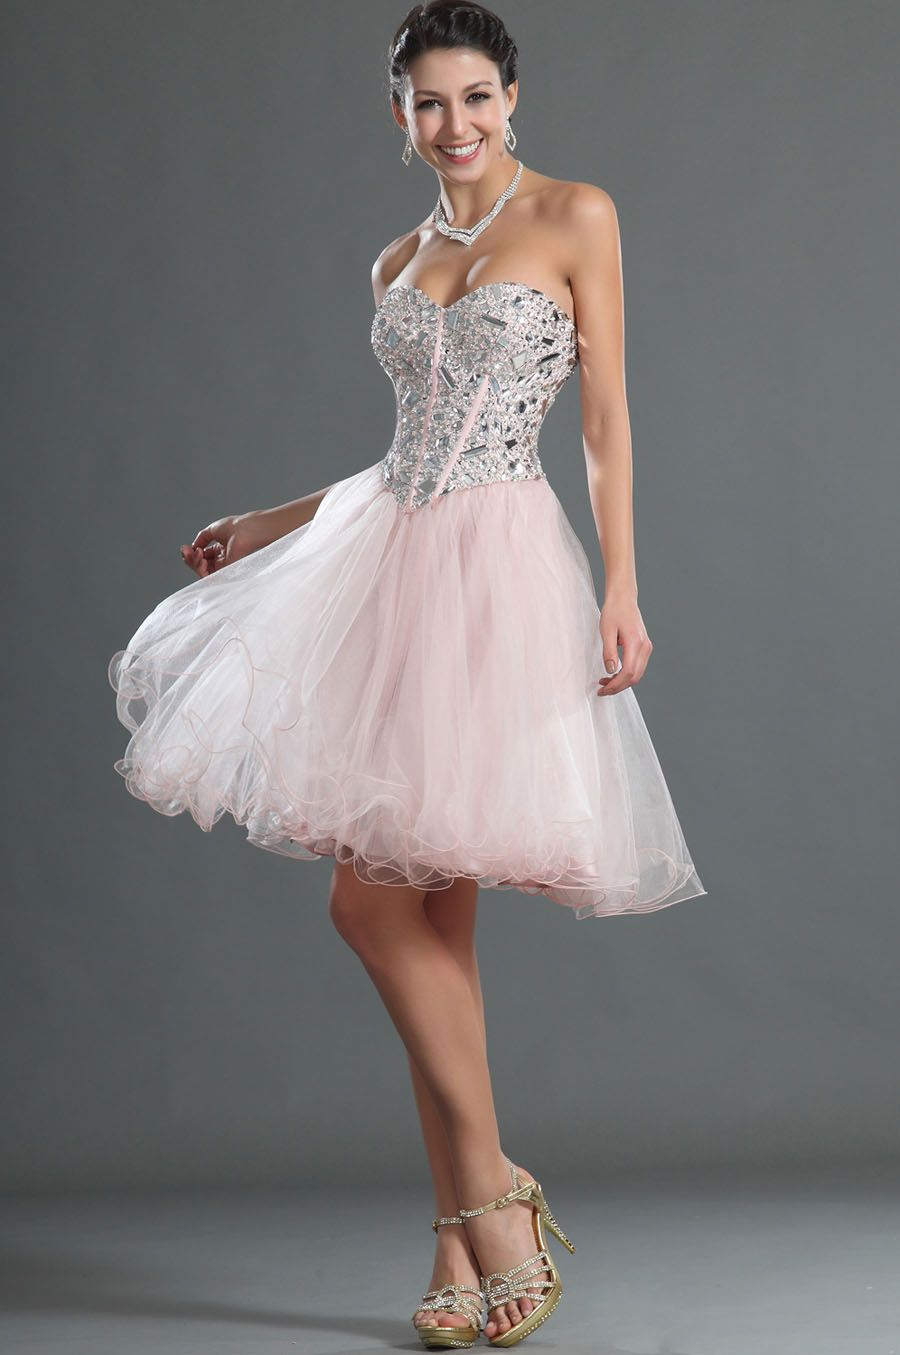 Formal pink dresses for women  blushing pink sweetheart short ball dress  prom dress  Pinterest